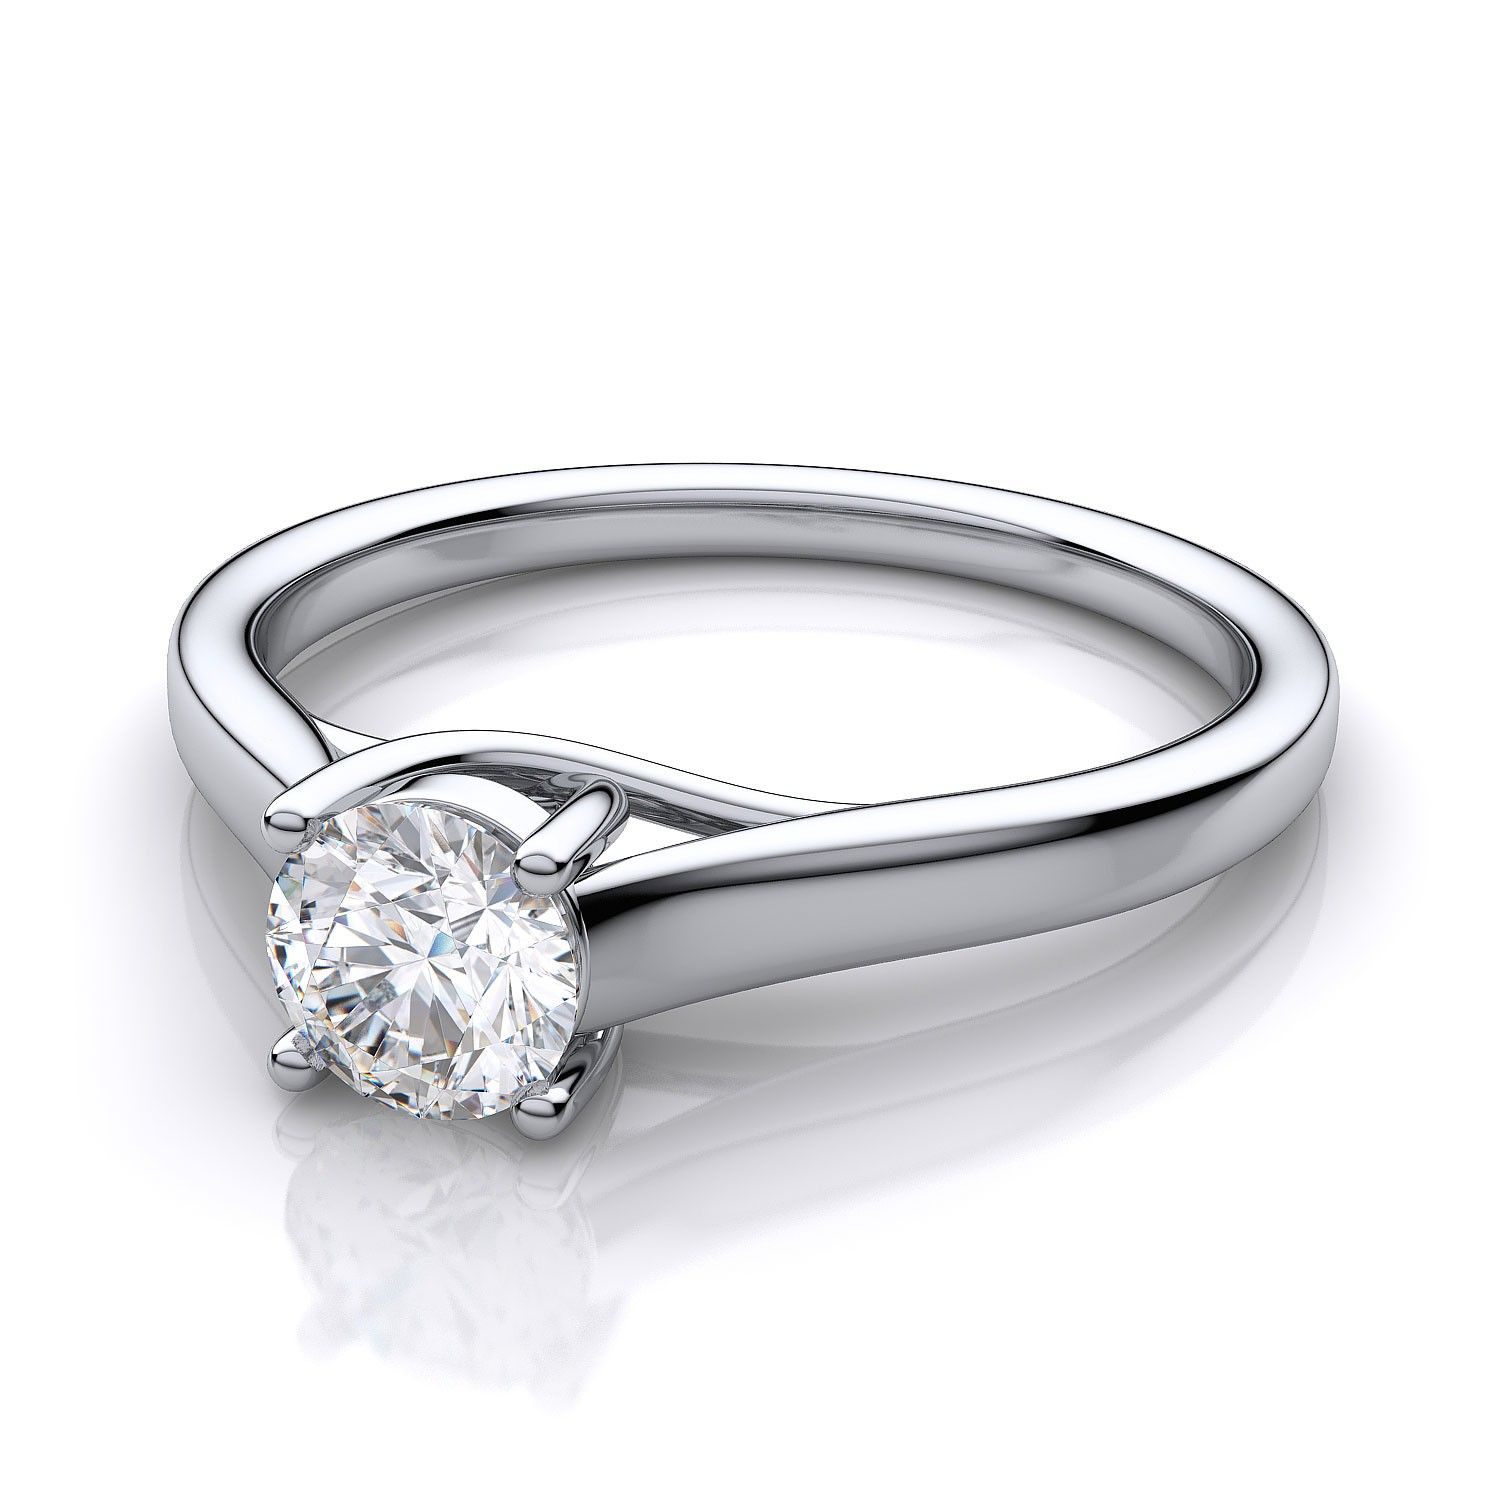 Under $1500 Engagement Rings! 25 Carat Trellis Style Round Diamond  Solitaire Ring In 14kt